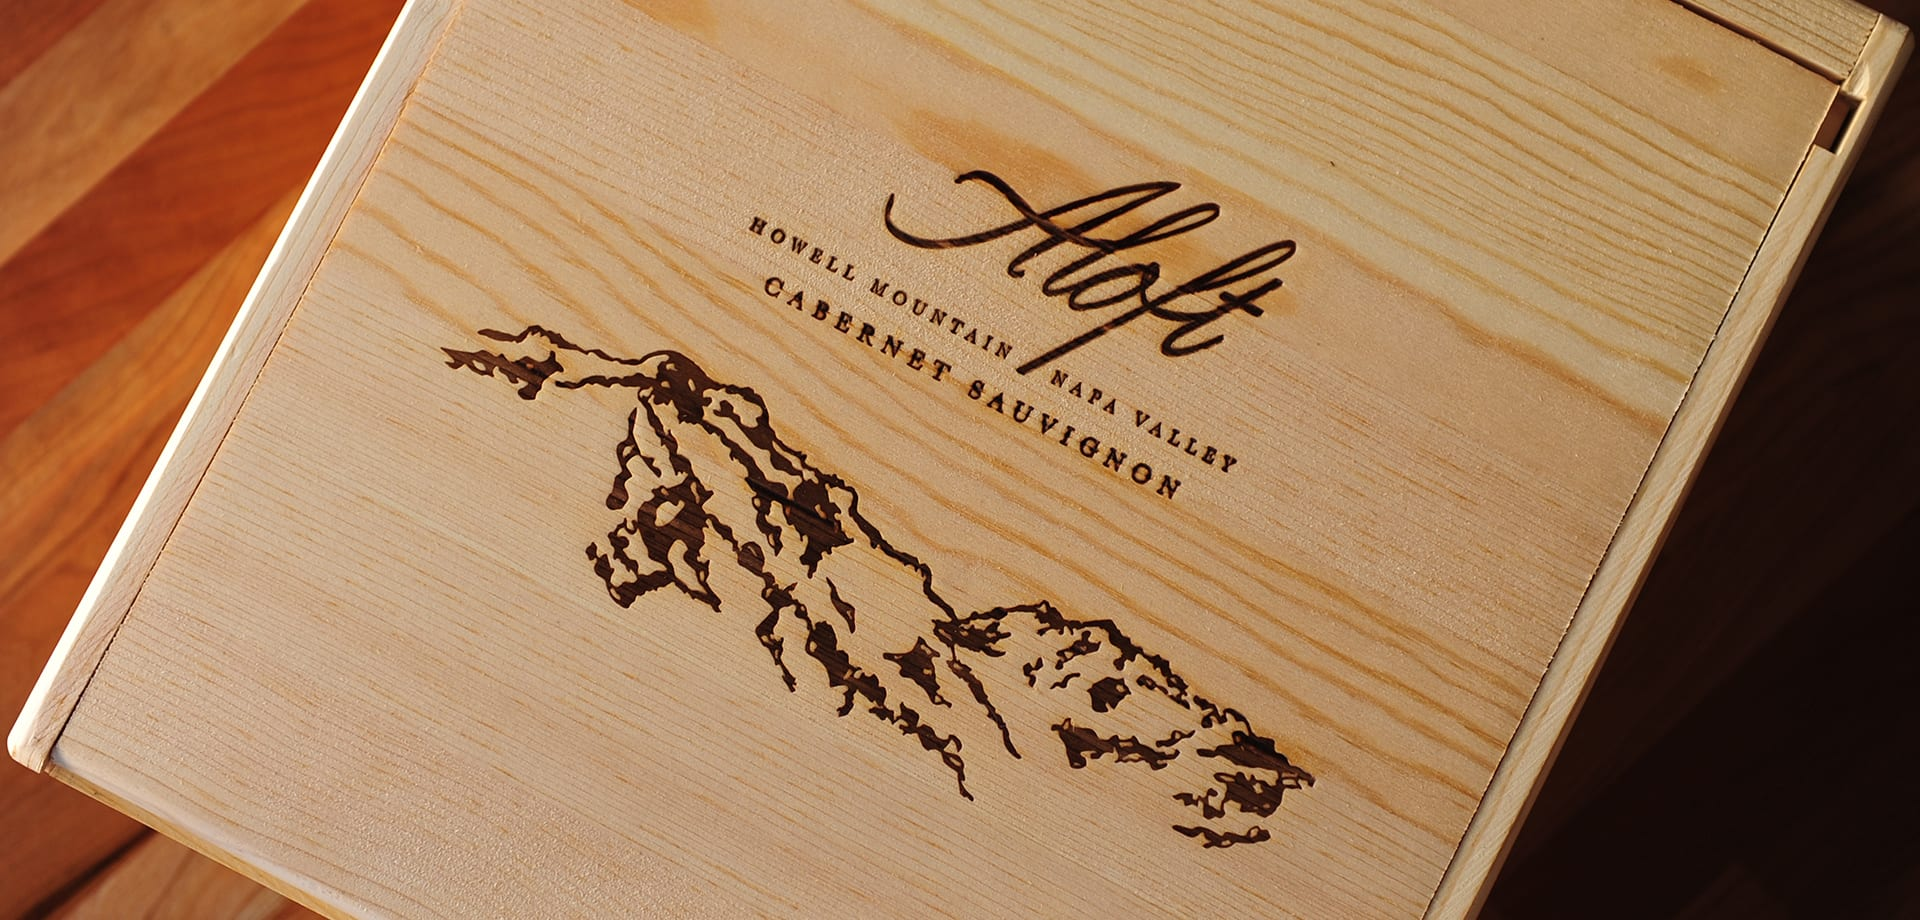 The box packaging that Aloft Cabernet Sauvignon comes in